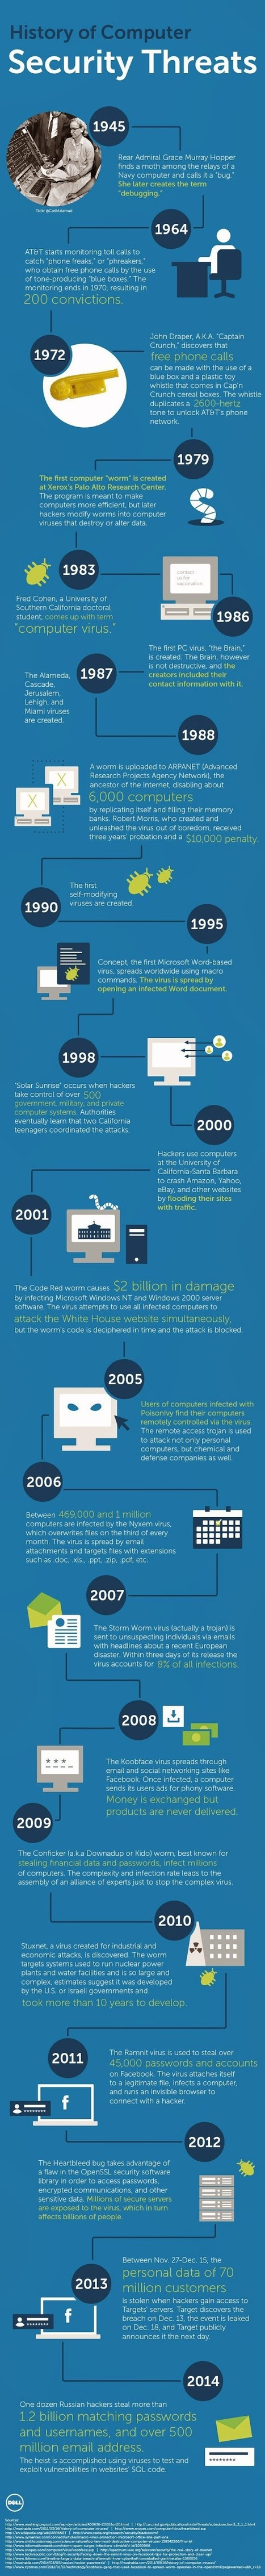 History of Computer Security Threats [Infographic] - Cyber Kendra - Latest Hacking News And Tech News | Informática Forense | Scoop.it